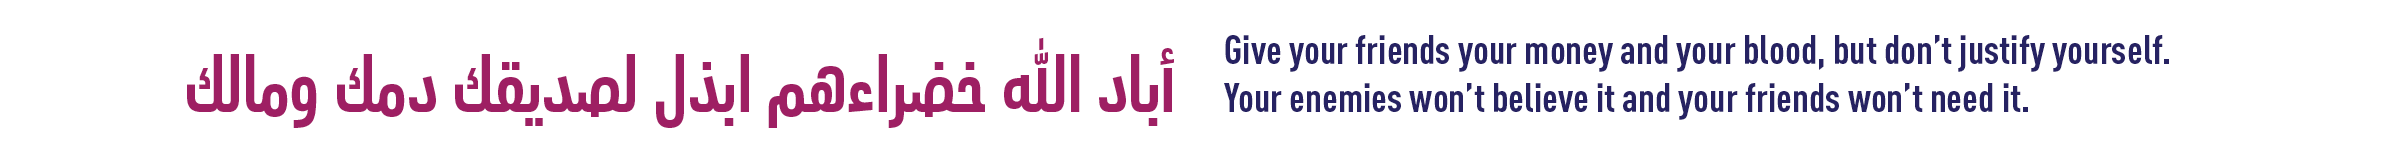 Arabic proverb with translation, set in FF DIN Arabic Condensed Bold.